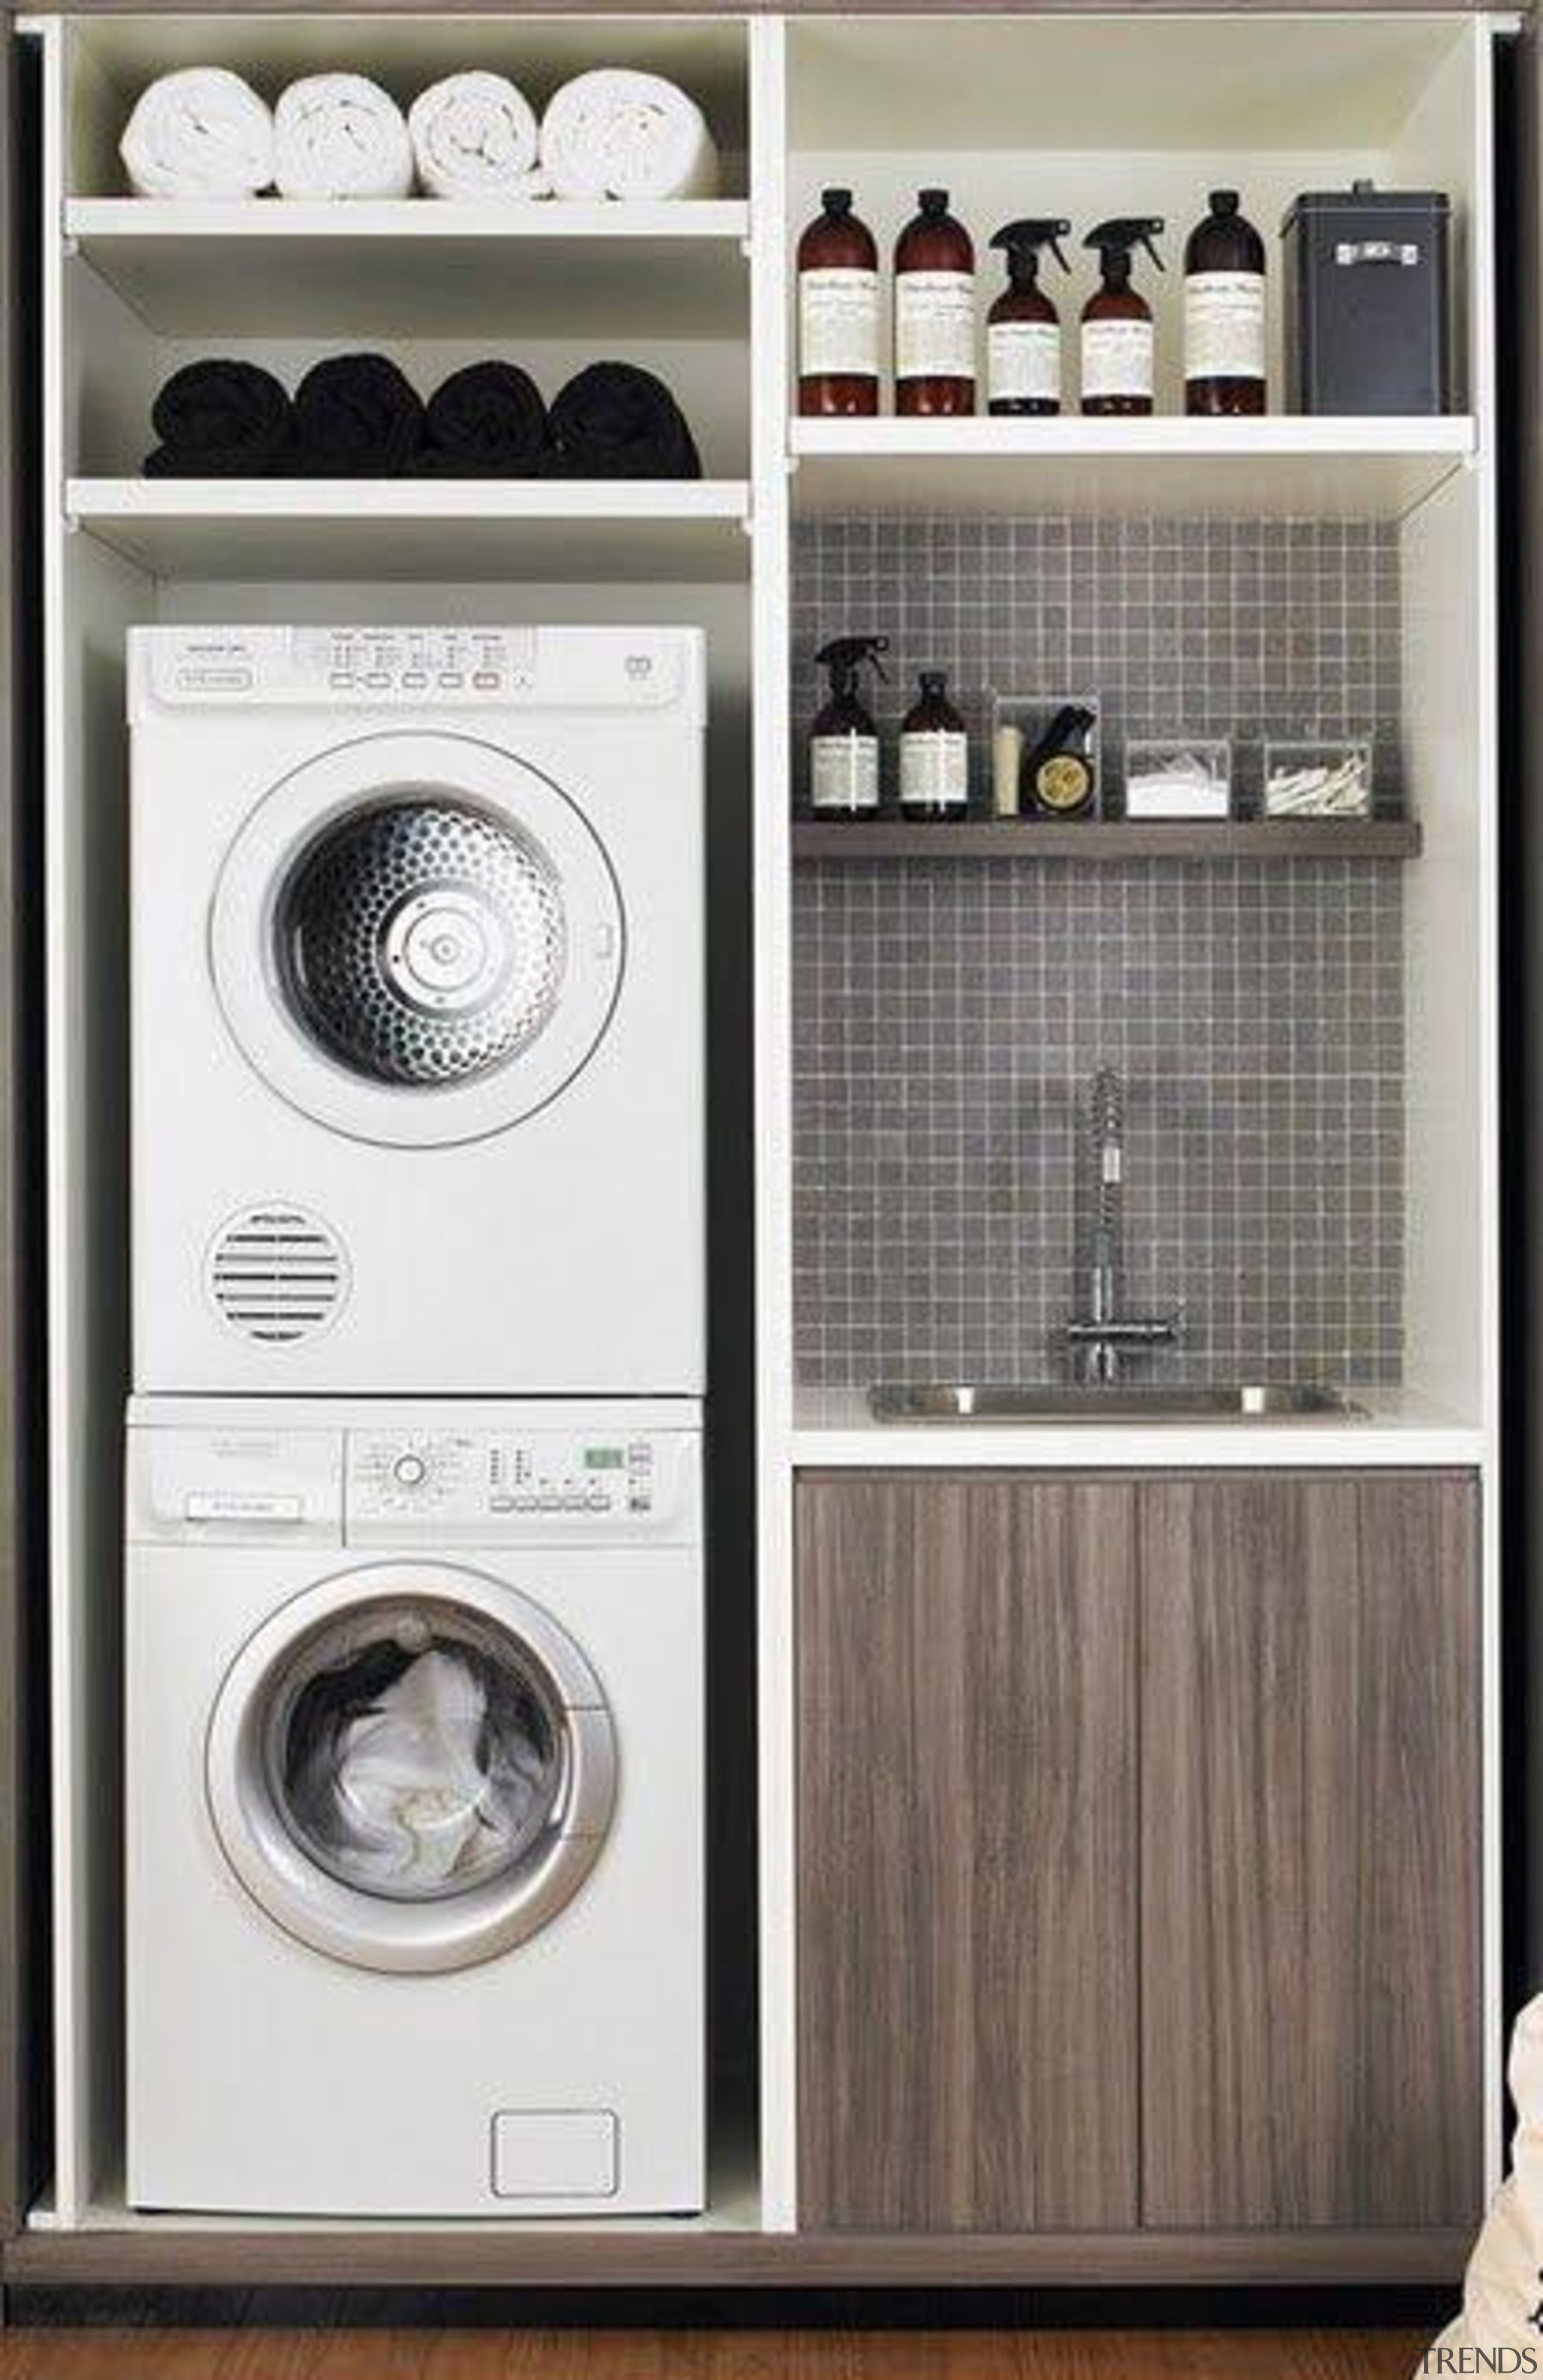 Utilitarian spaces such as laundry rooms and mudrooms clothes dryer, furniture, home appliance, laundry, laundry room, major appliance, product, washing machine, white, gray